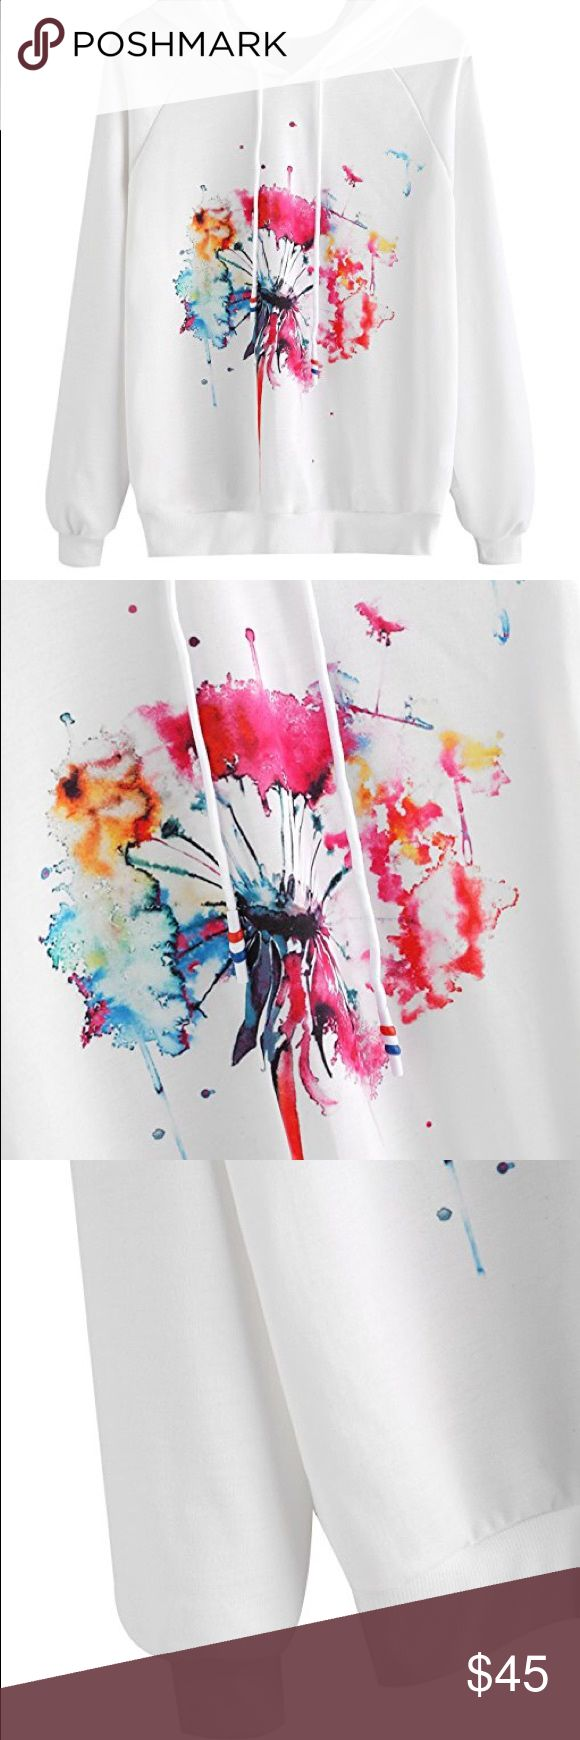 Splatter paint hoodie Brand new w tags, boutique neon splatter paint graphic lightweight hooded sweatshirt. Available sizes are: small, med, large, and xlarge. 100% cotton. Please refer to size chart for questions about sizing.  POSH RULES ONLY NO PP NO TRADES NO LOWBALL OFFERS  HAPPY POSHING! boutique Tops Sweatshirts & Hoodies